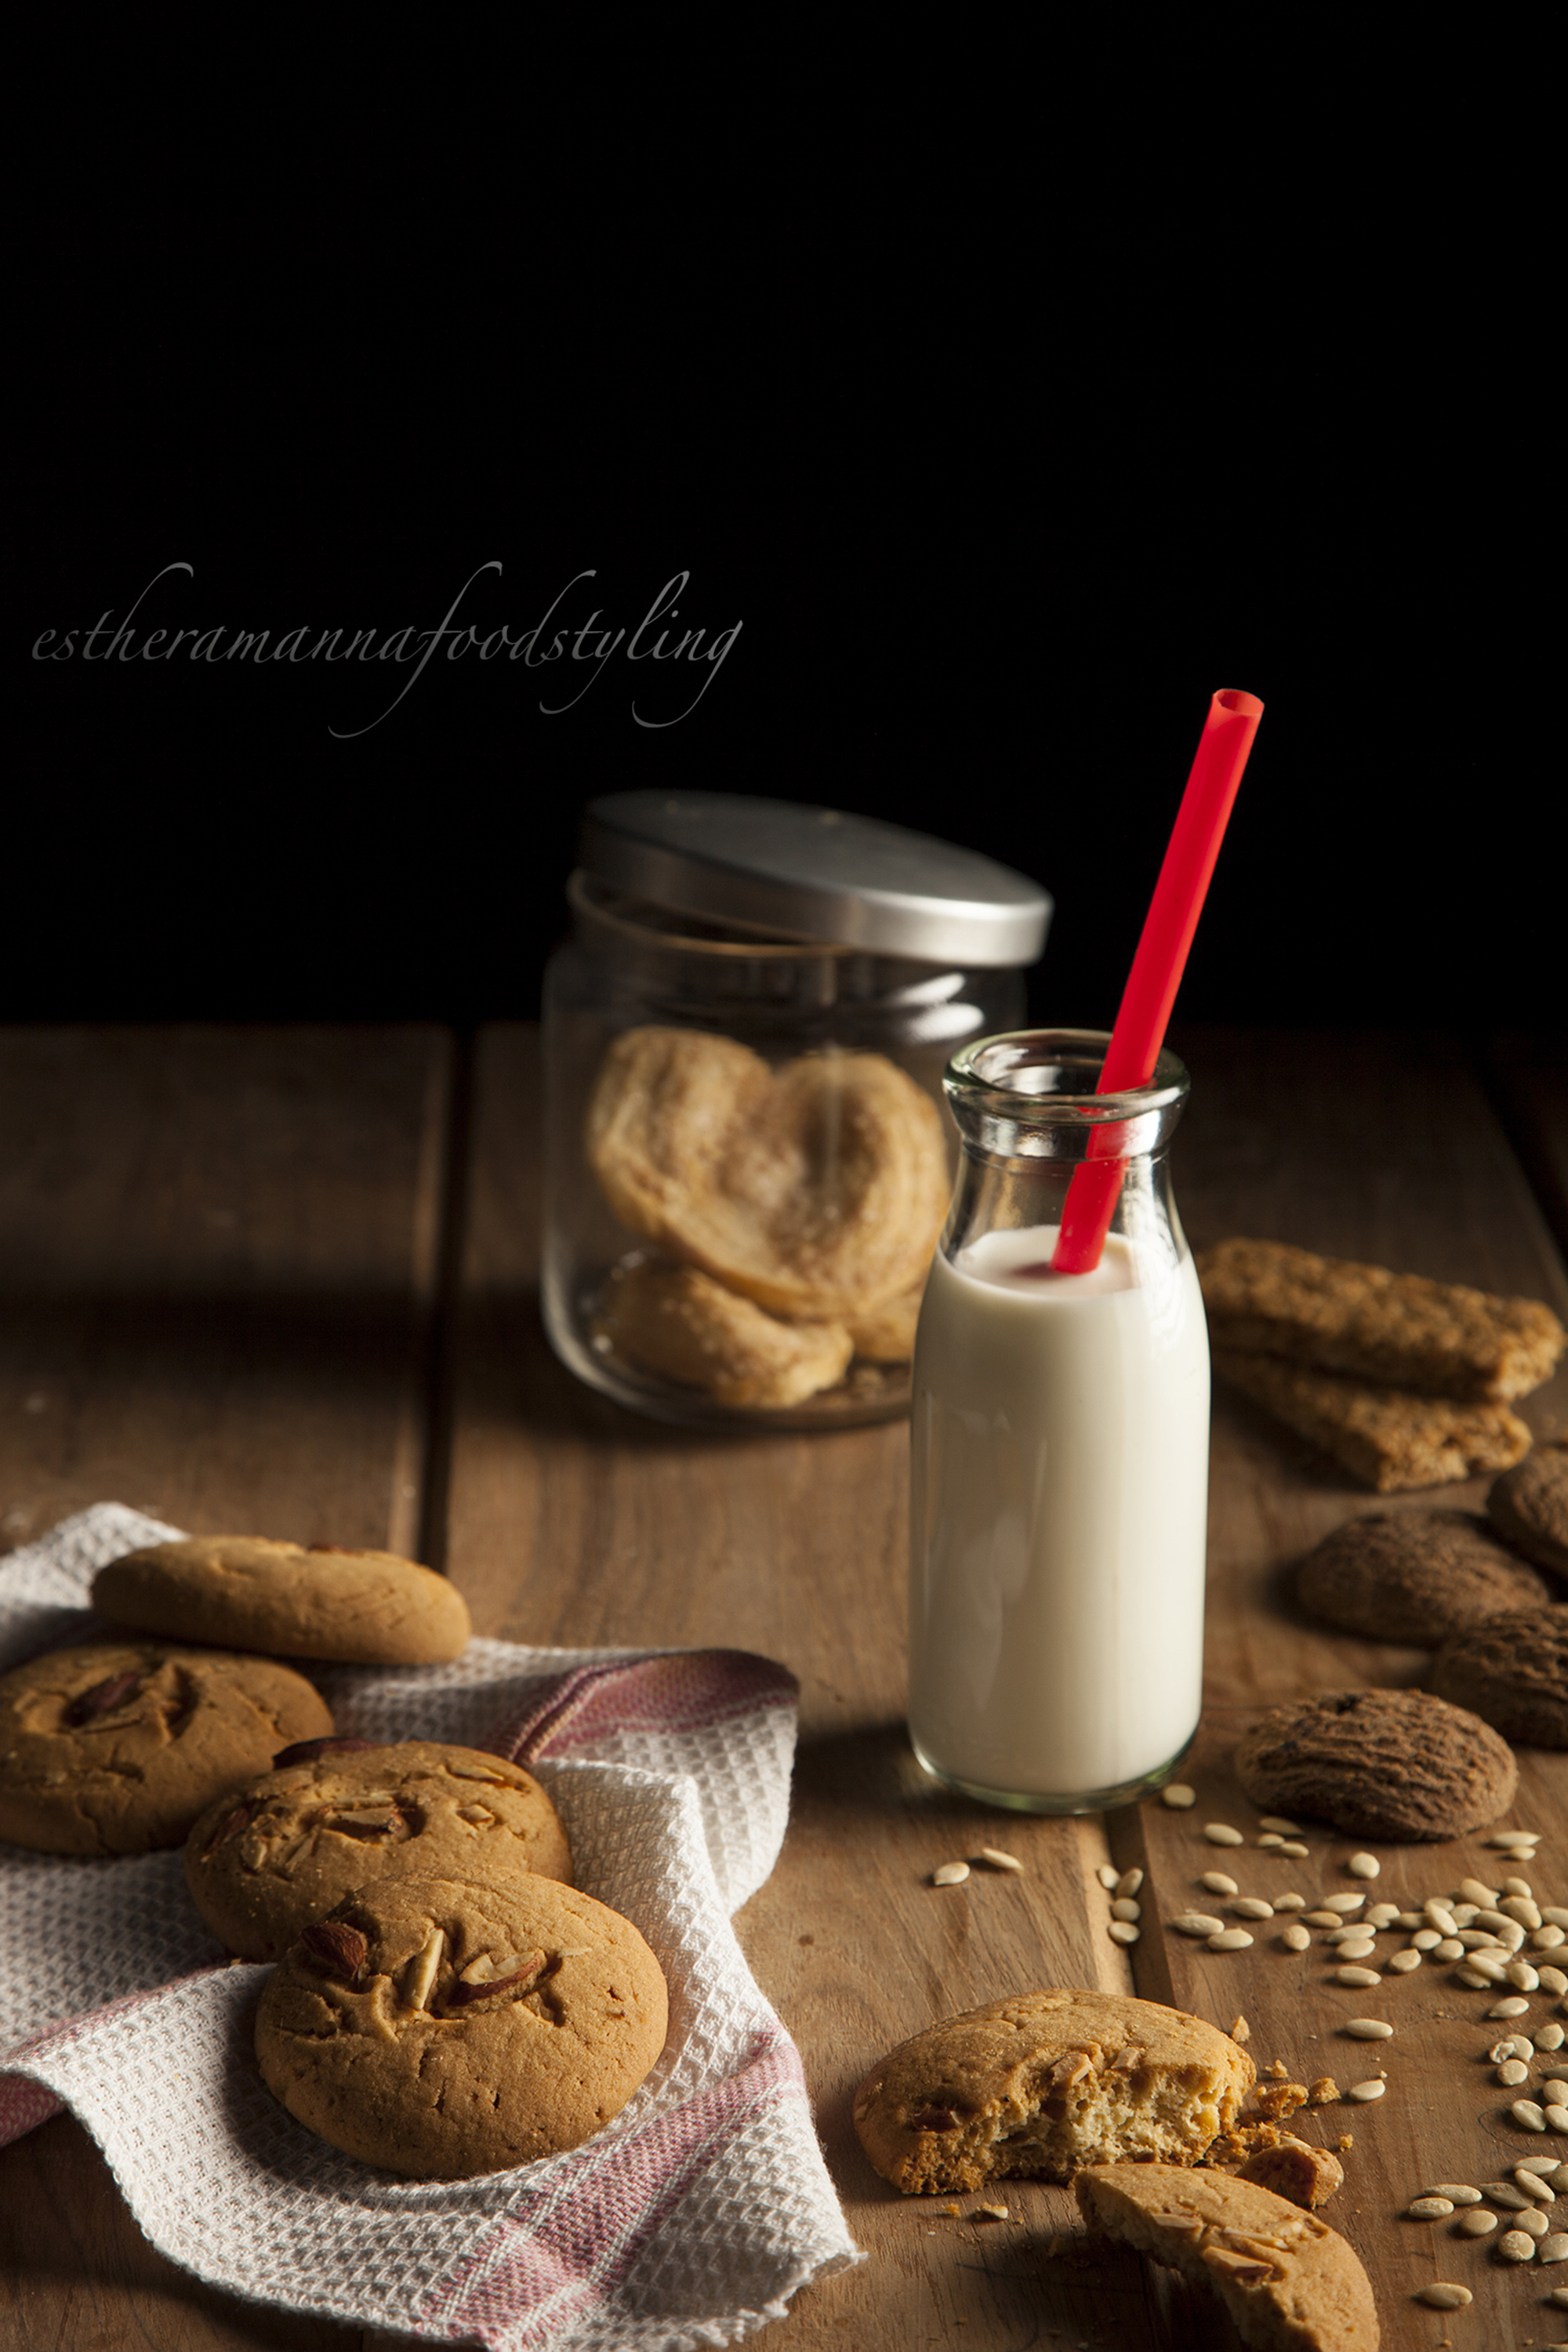 Milk and cookies,Foodstyling,Esther Amanna